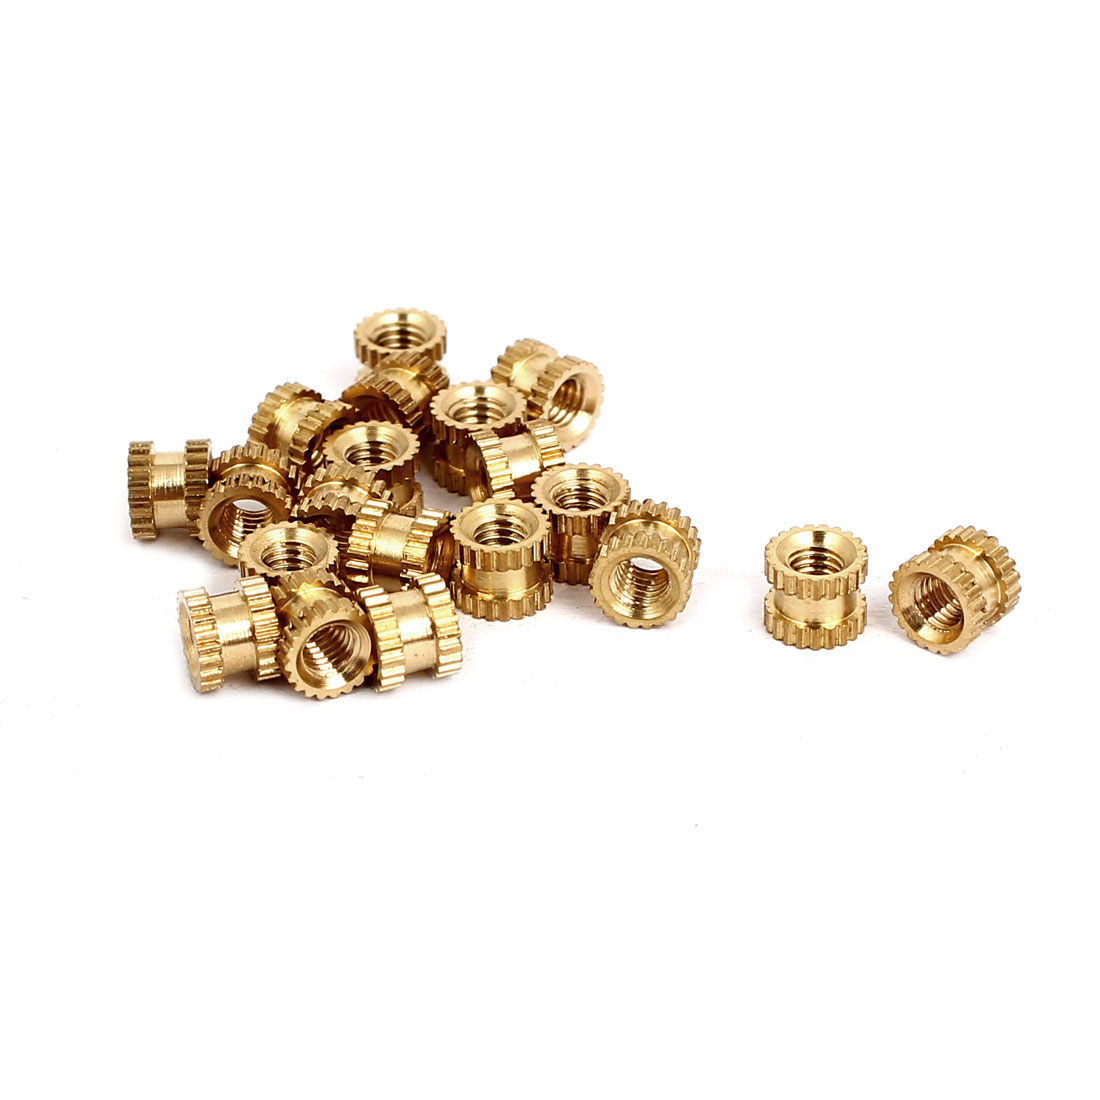 M3x4mmx5mm Female Threaded Brass Knurled Insert Embedded Nuts Gold Tone 20pcs